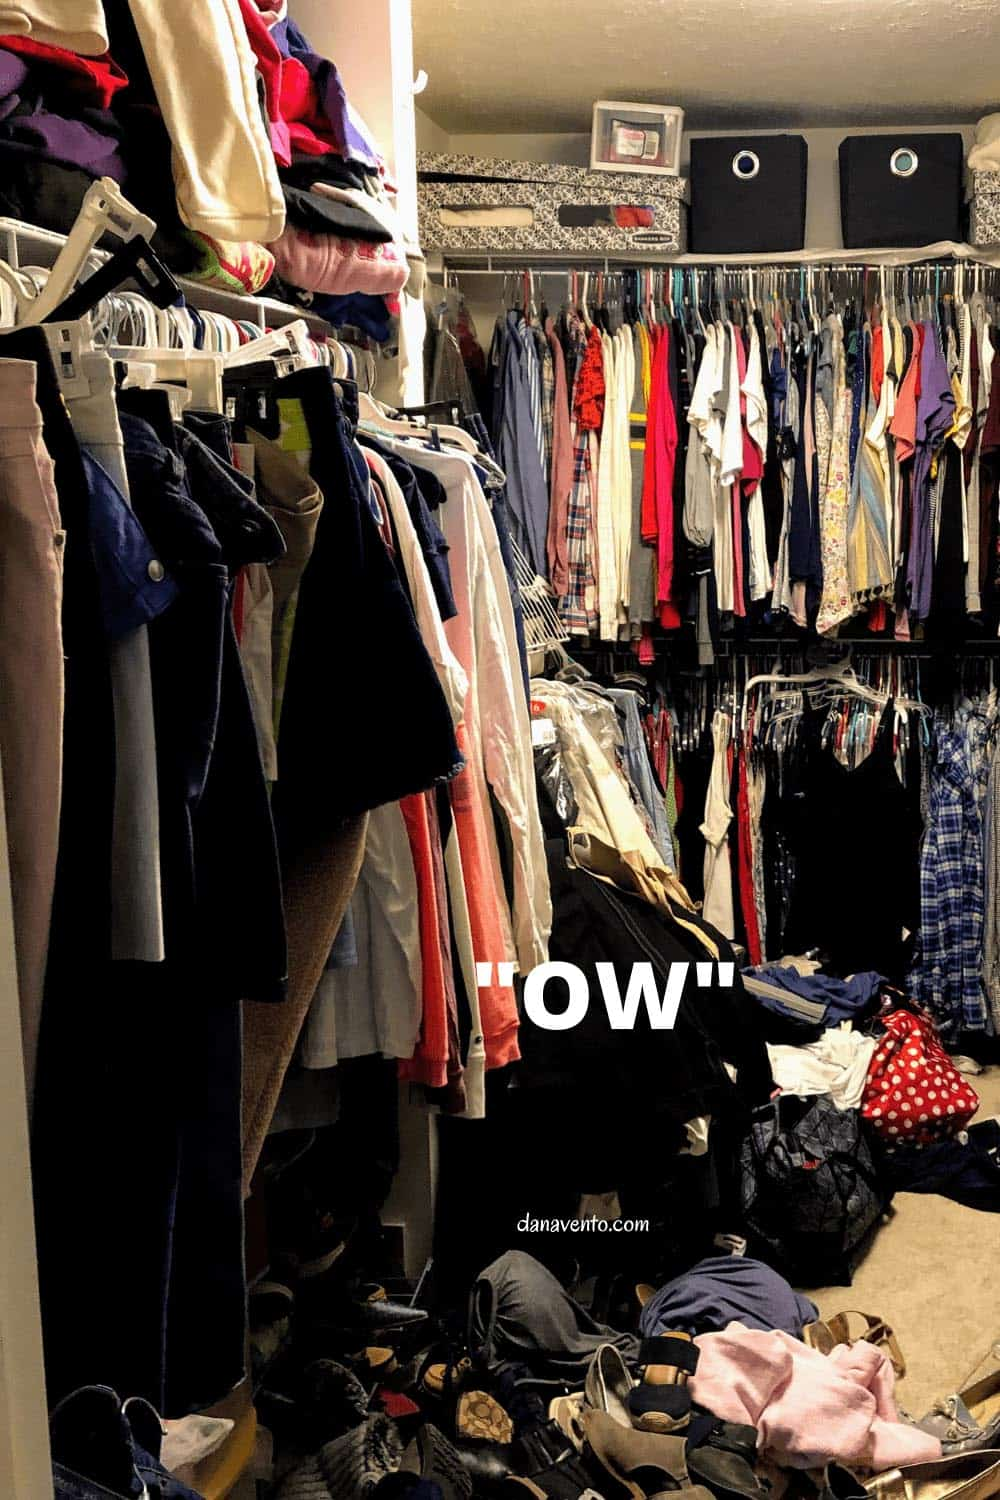 currently having the most issues in my closet that is not a solid wood closet system